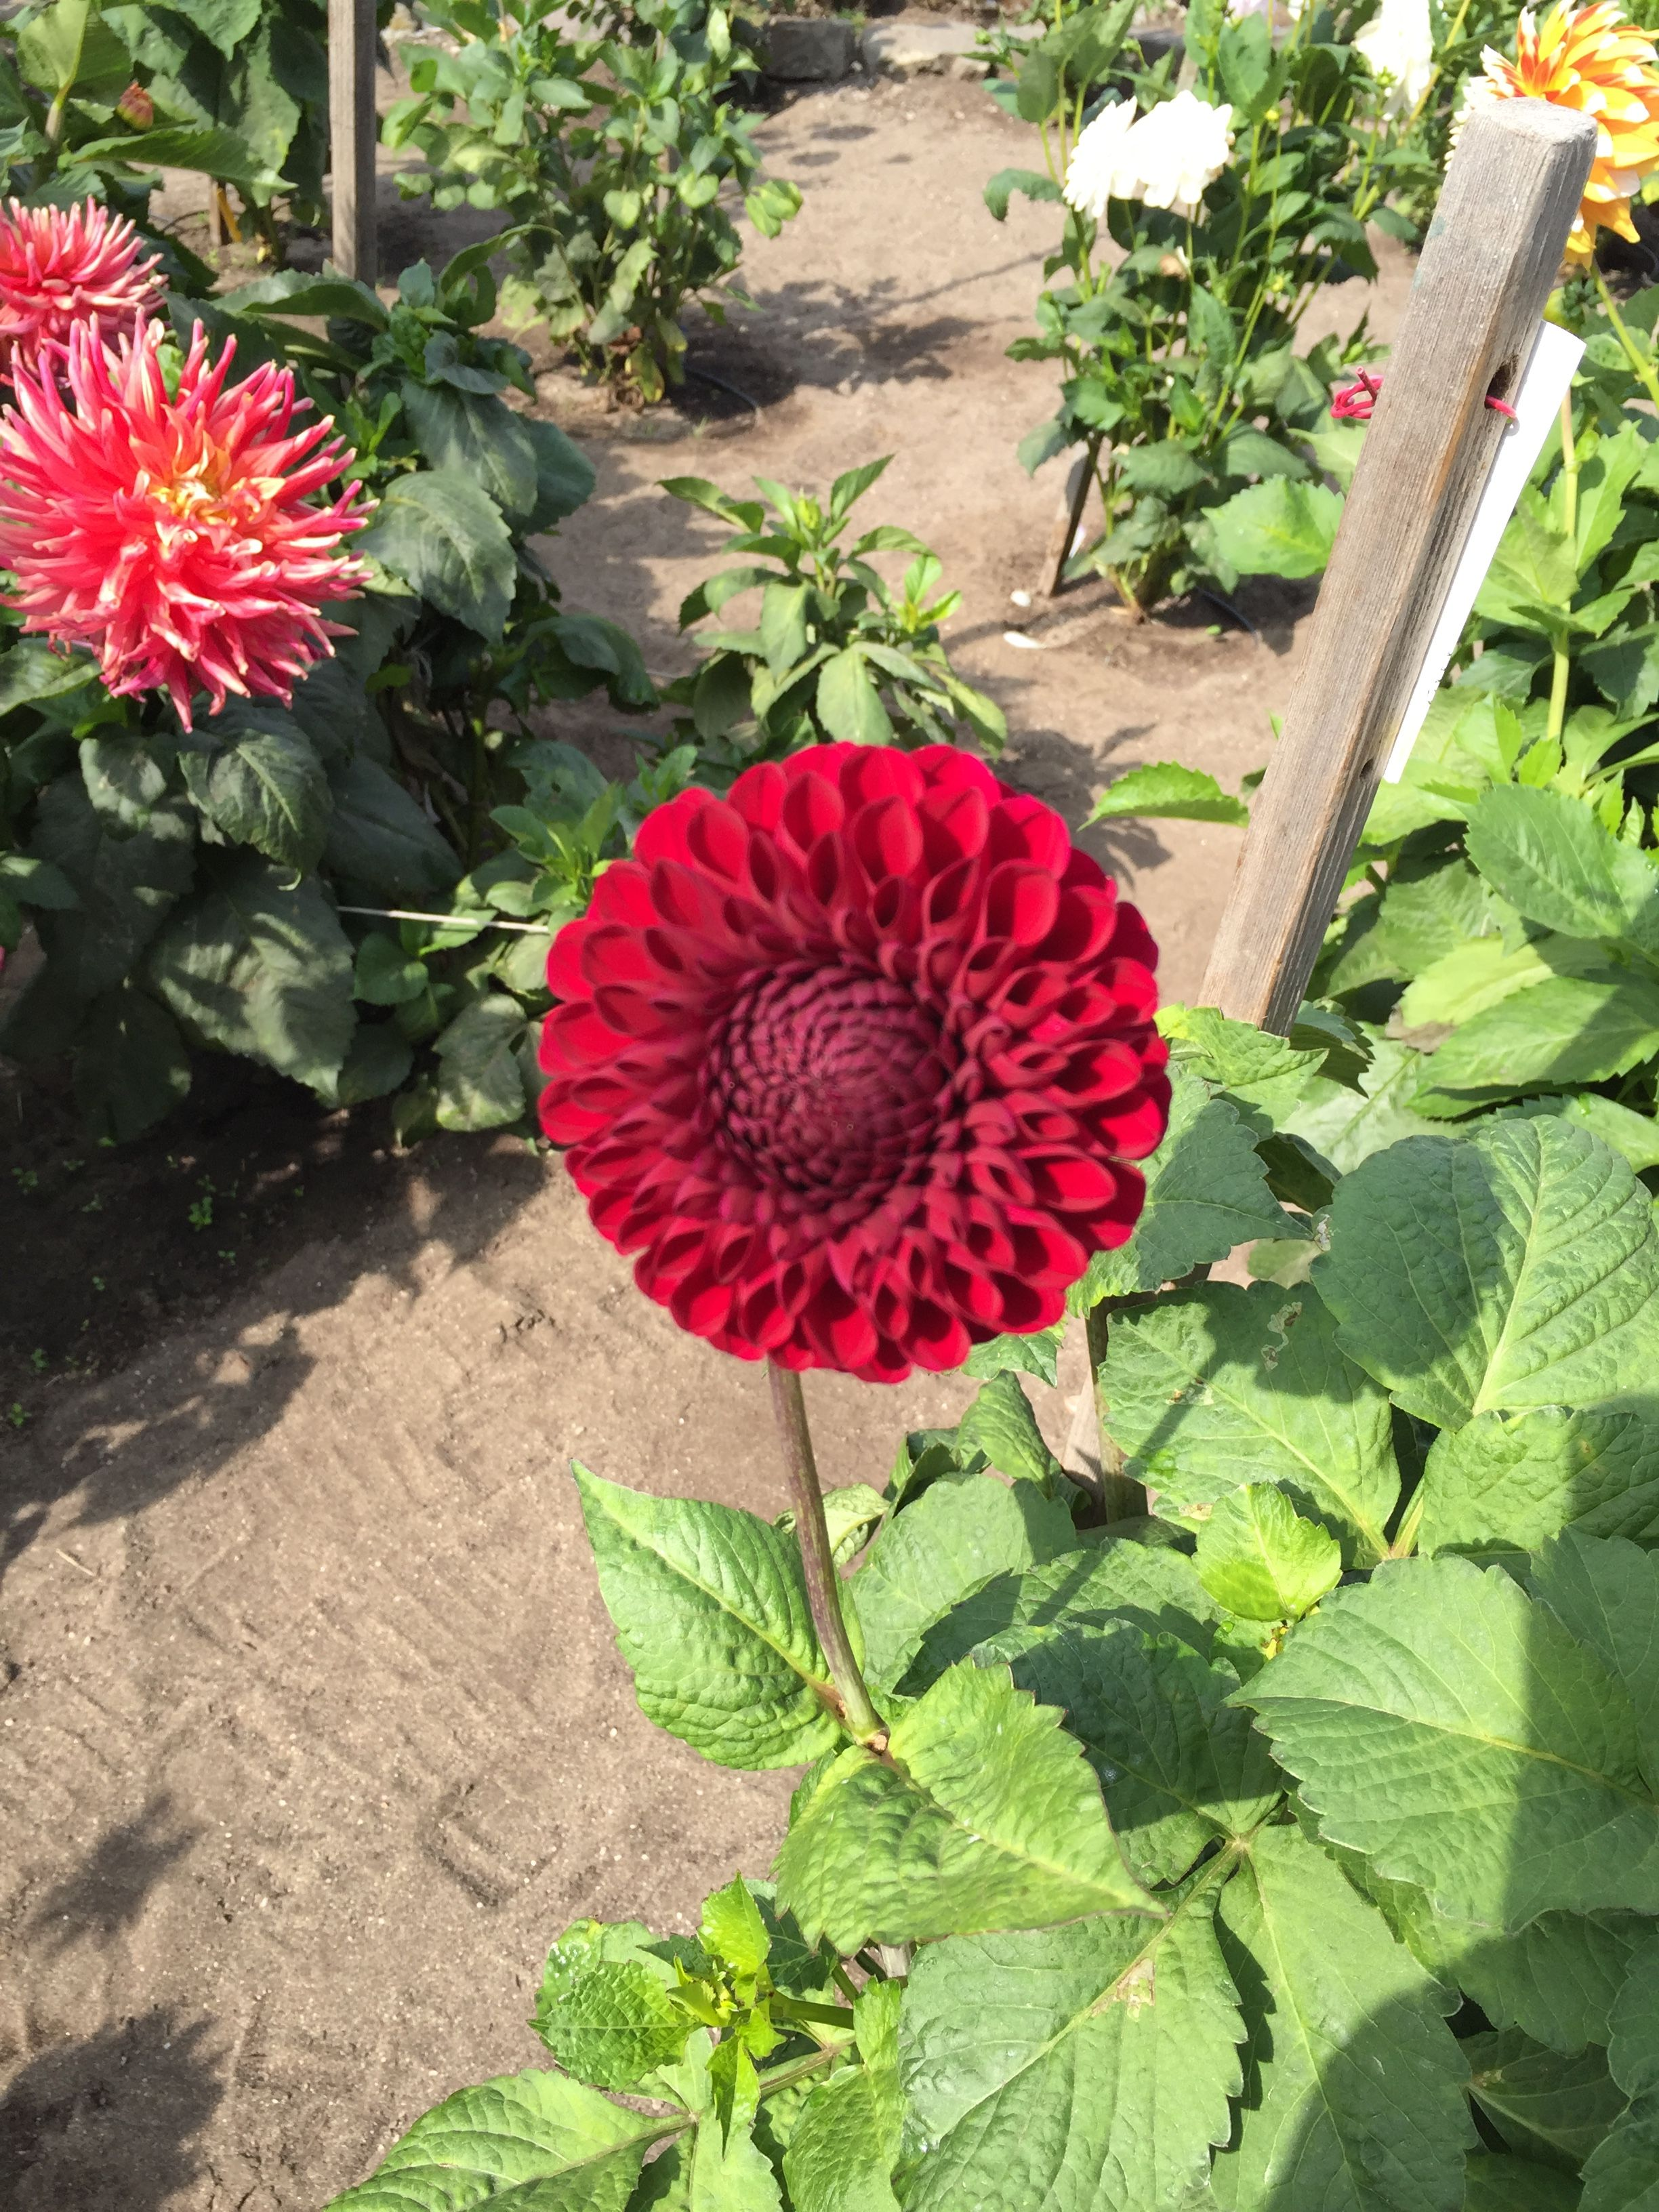 Pin By Padma Rubiales On San Francisco Conservatory Of Flowers And Dahlia Garden Dahlias Garden Flowers Garden